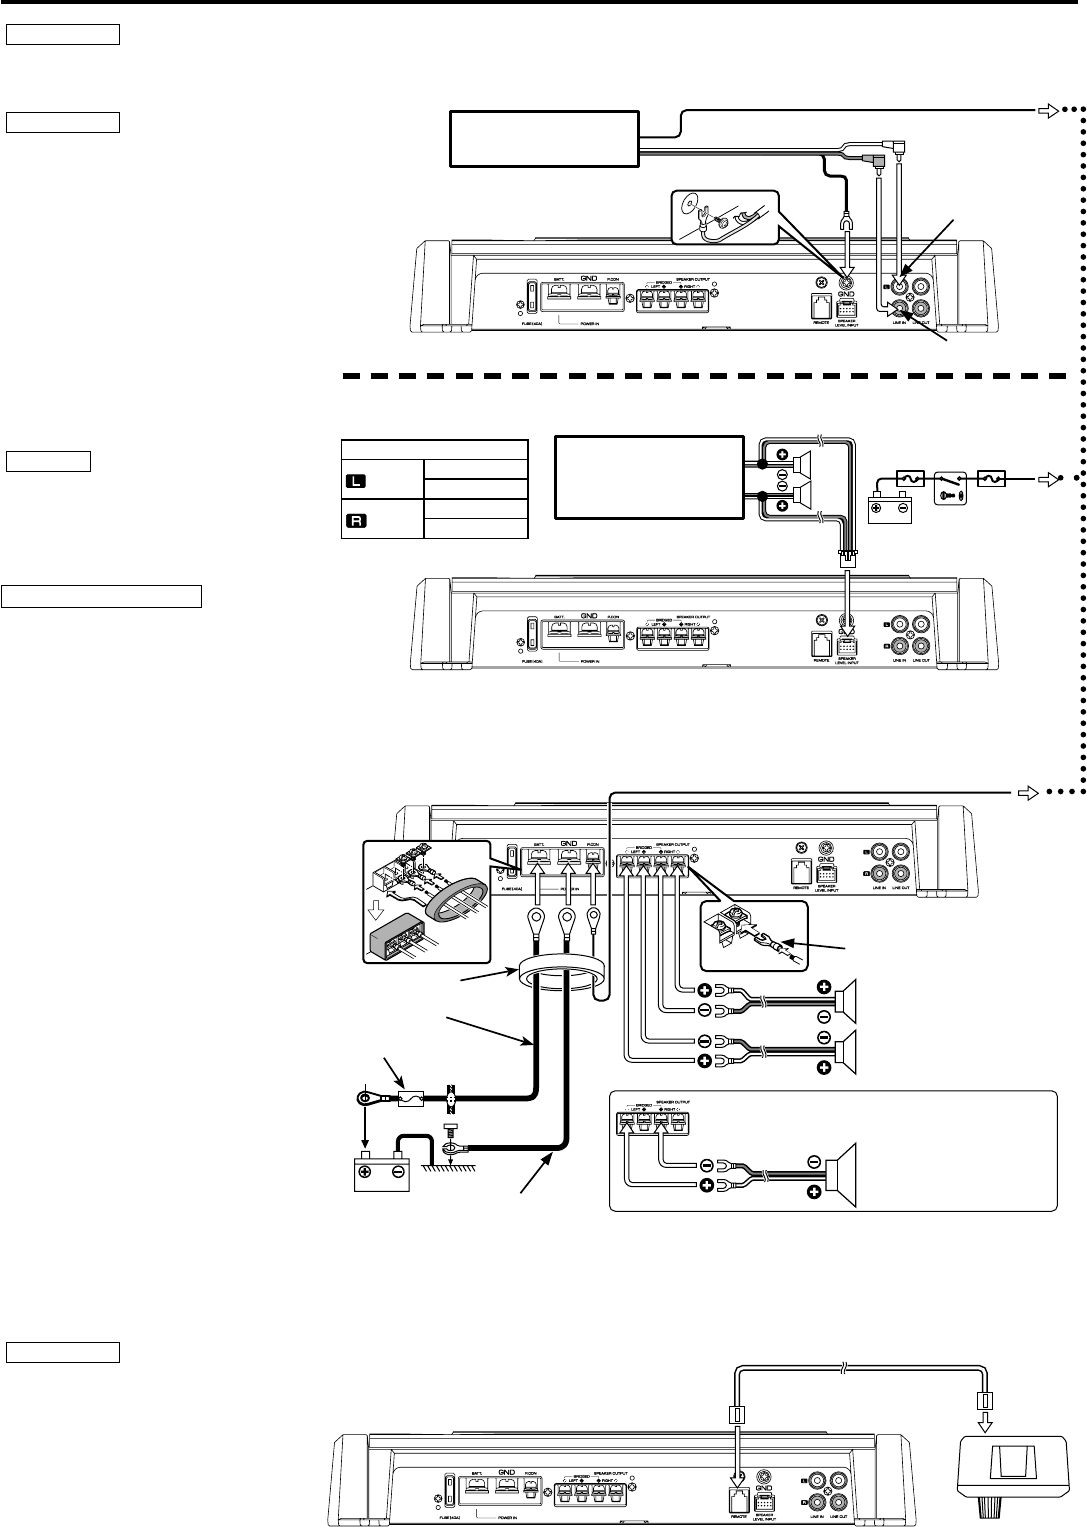 wiring diagram for kenwood kdc hd545u wiring image page 4 of kenwood stereo amplifier kac 7252 user guide on wiring diagram for kenwood kdc